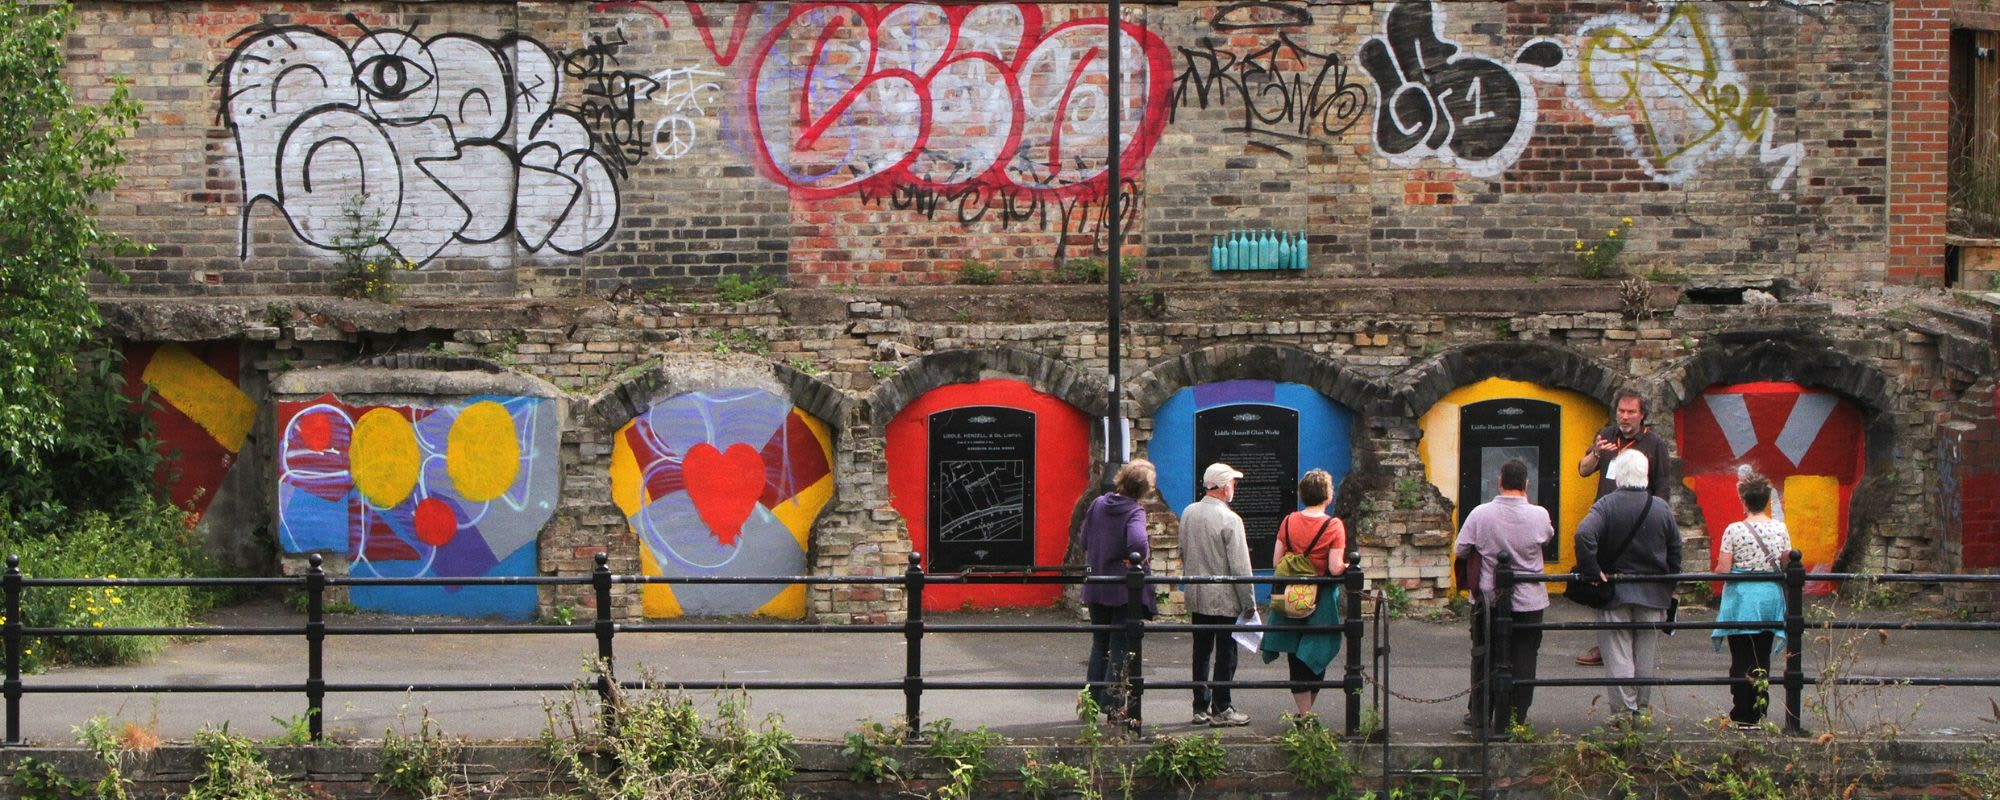 Back to the Future | Guided Walk of Ouseburn